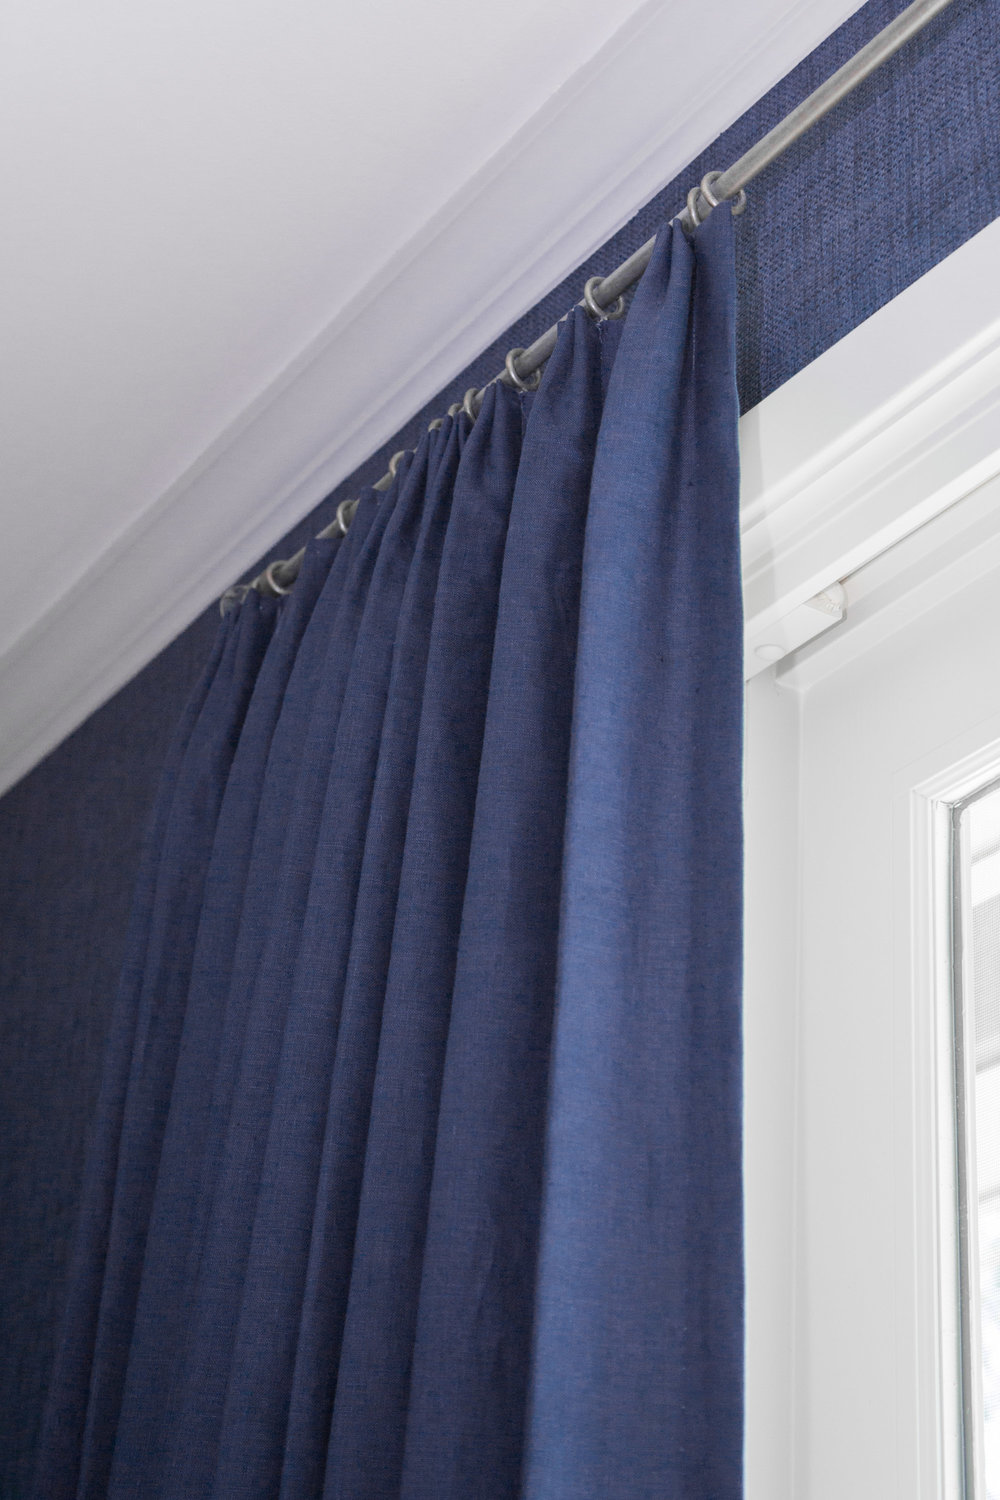 Drapery details with navy grasscloth | Designer: Carla Aston, Photographer: Tori Aston #drapery #windowtreatment